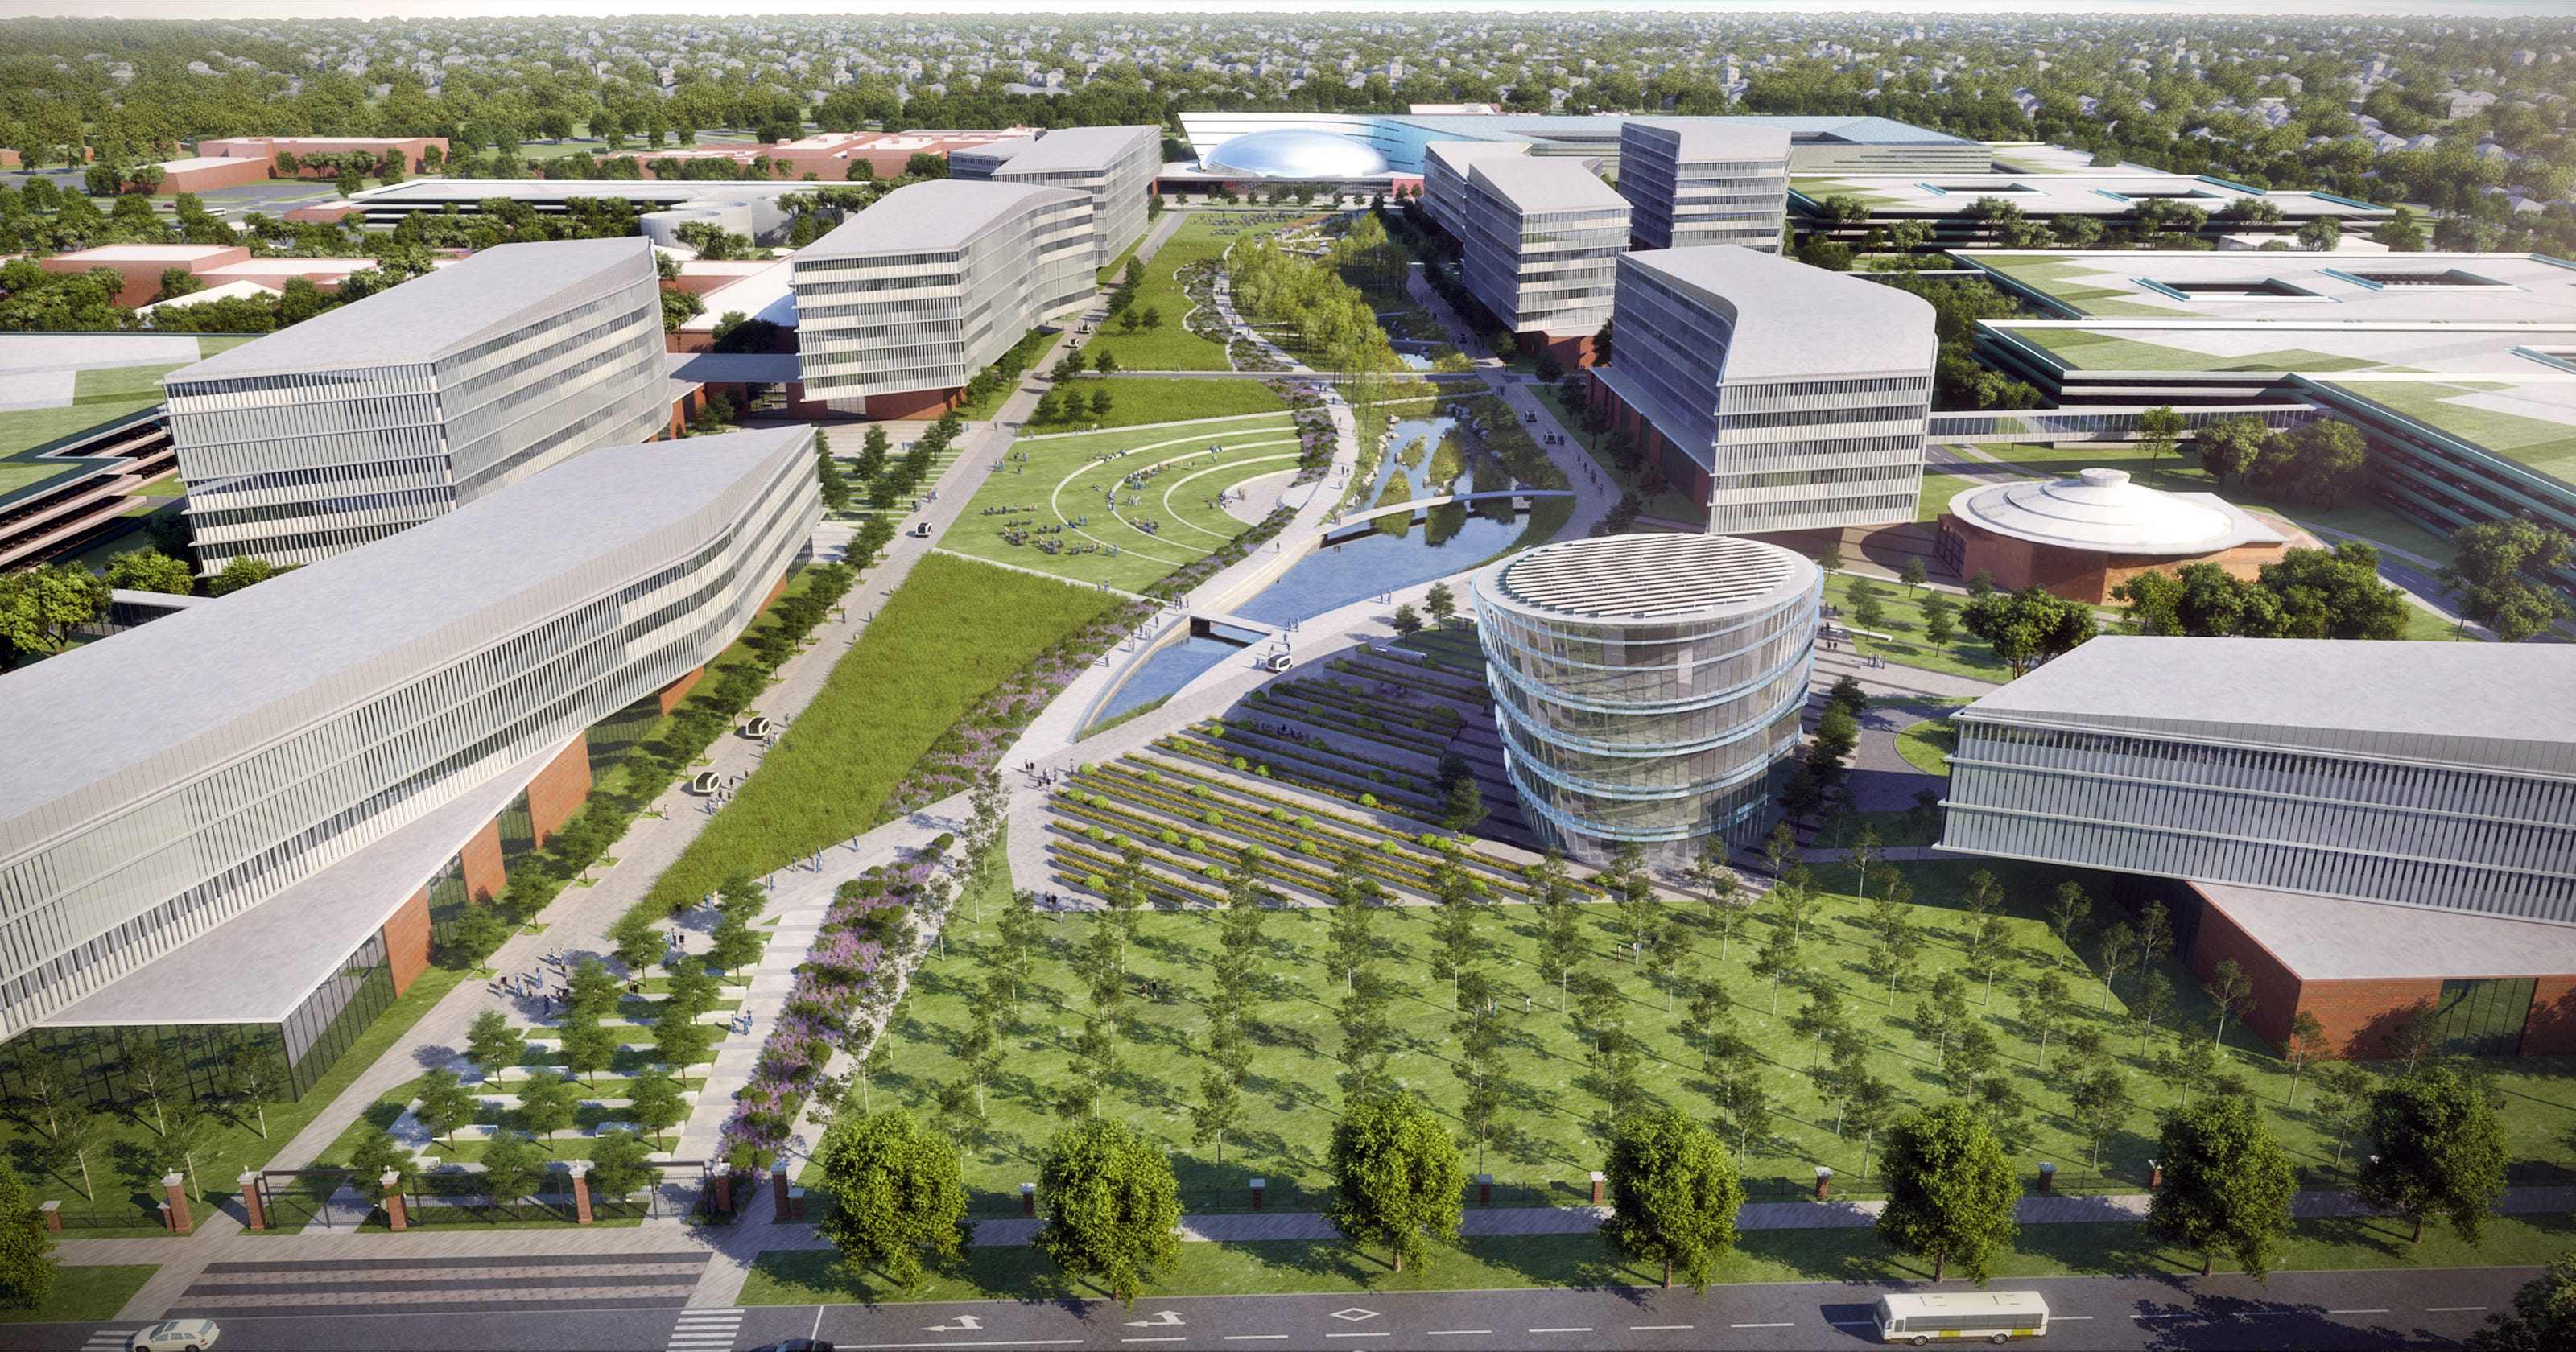 ford dearborn campus map Ford Unveils 10 Year Plan To Transform Dearborn Campus ford dearborn campus map